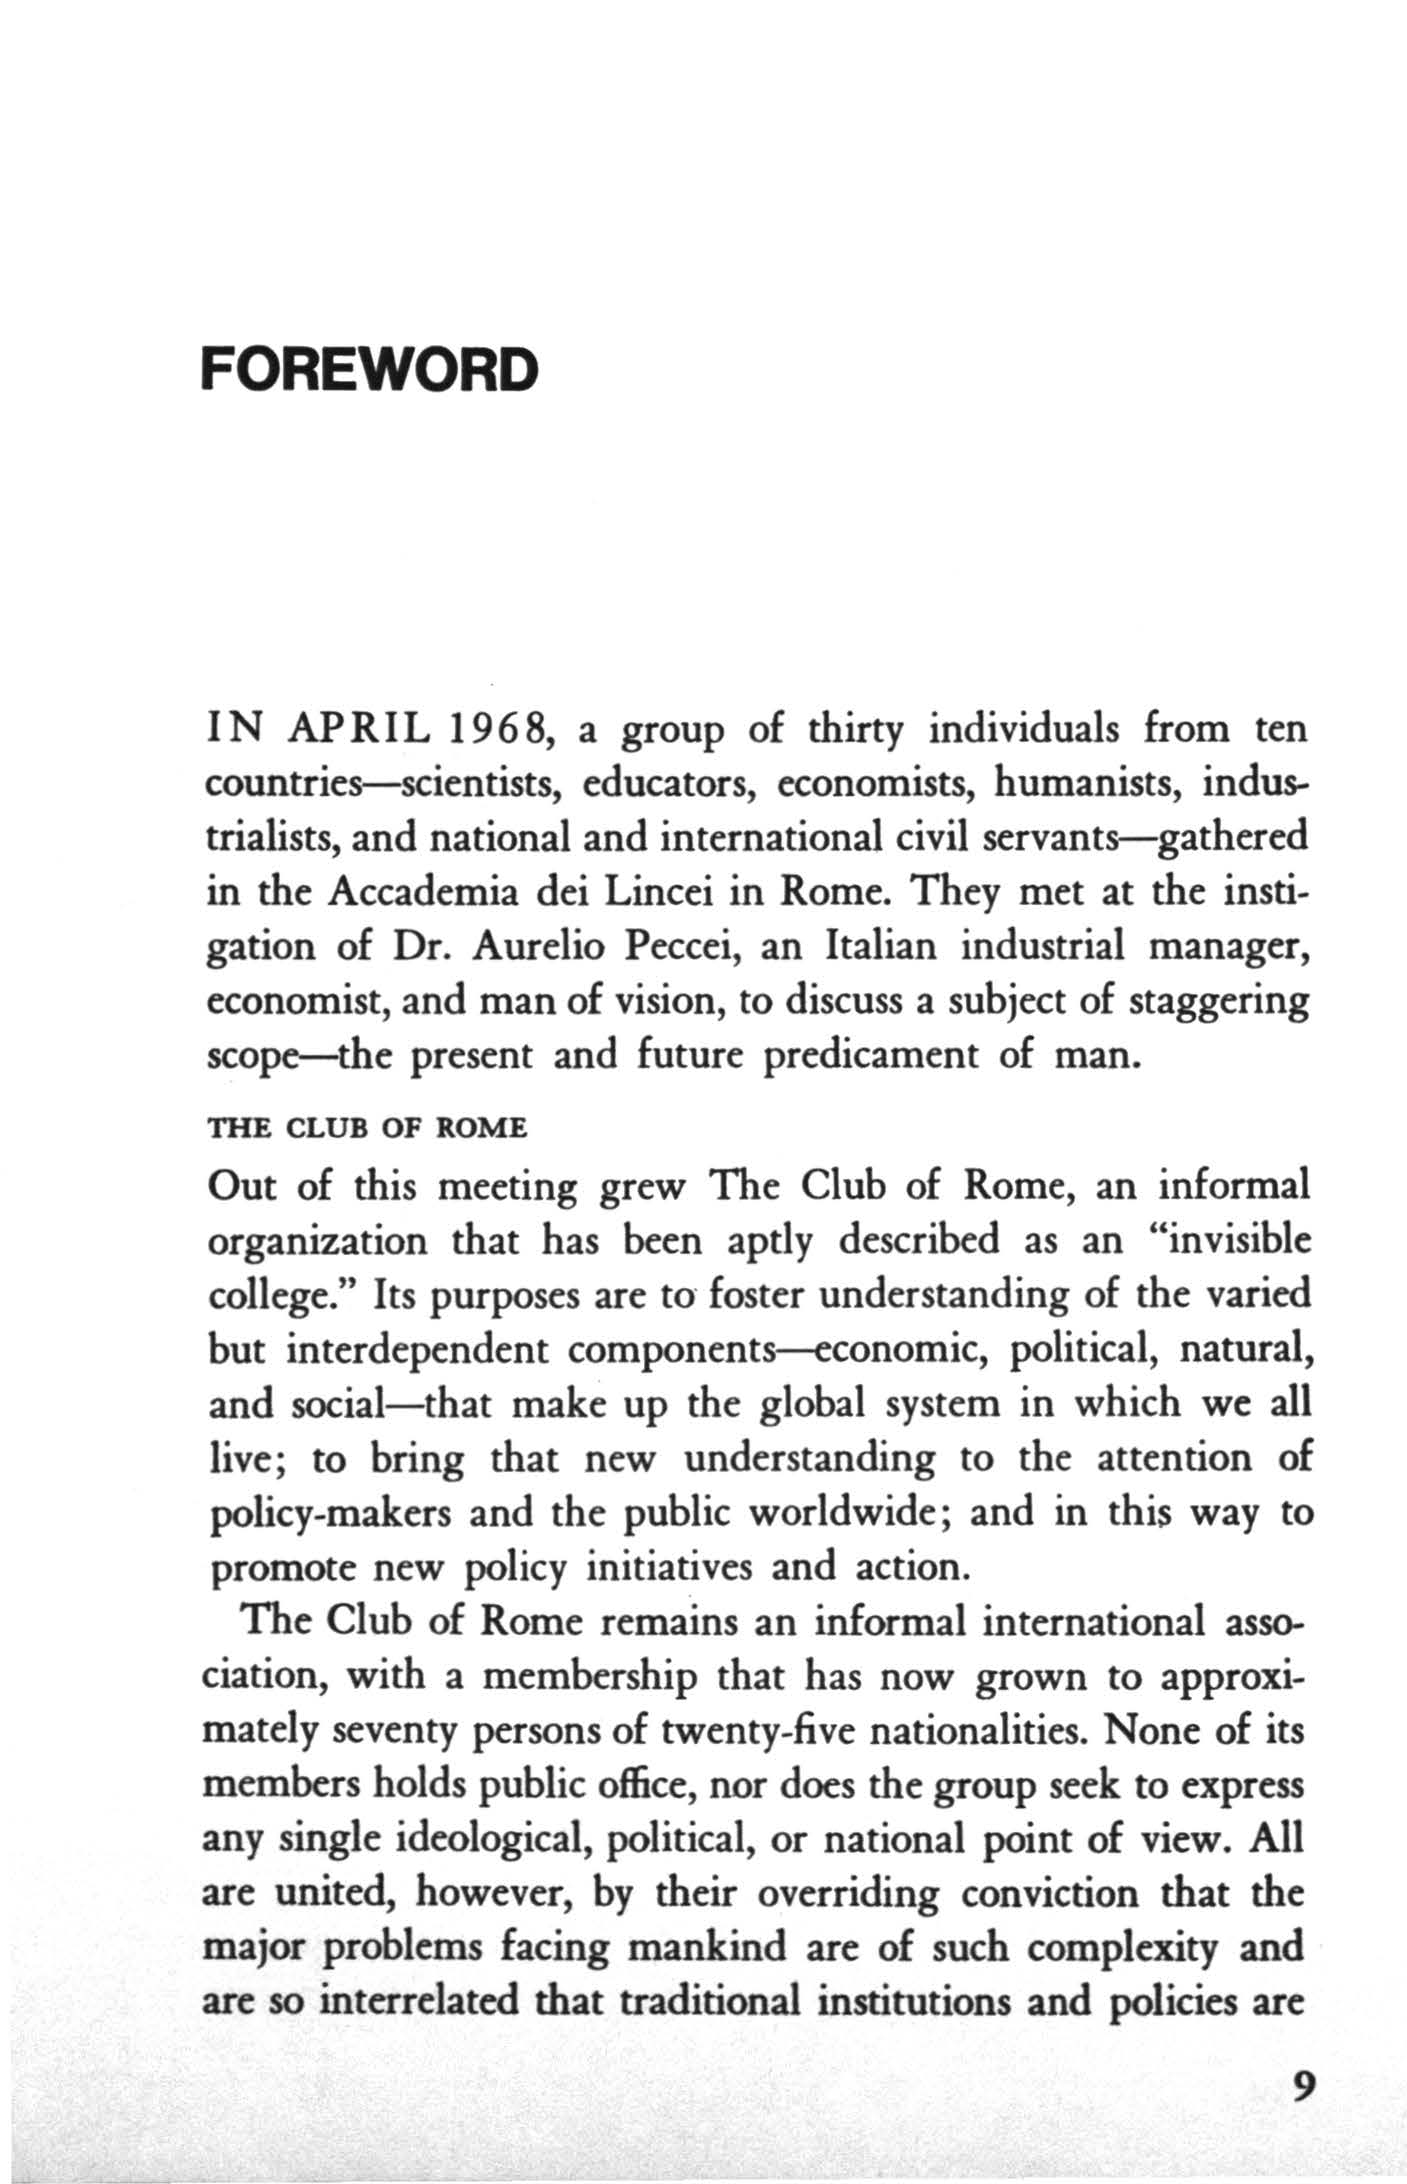 FOREWORD N APRL 1968, a group of thirty individuals from ten countries-scientists, educators, economists, humanists, industrialists, and national and international civil servants-gathered in the